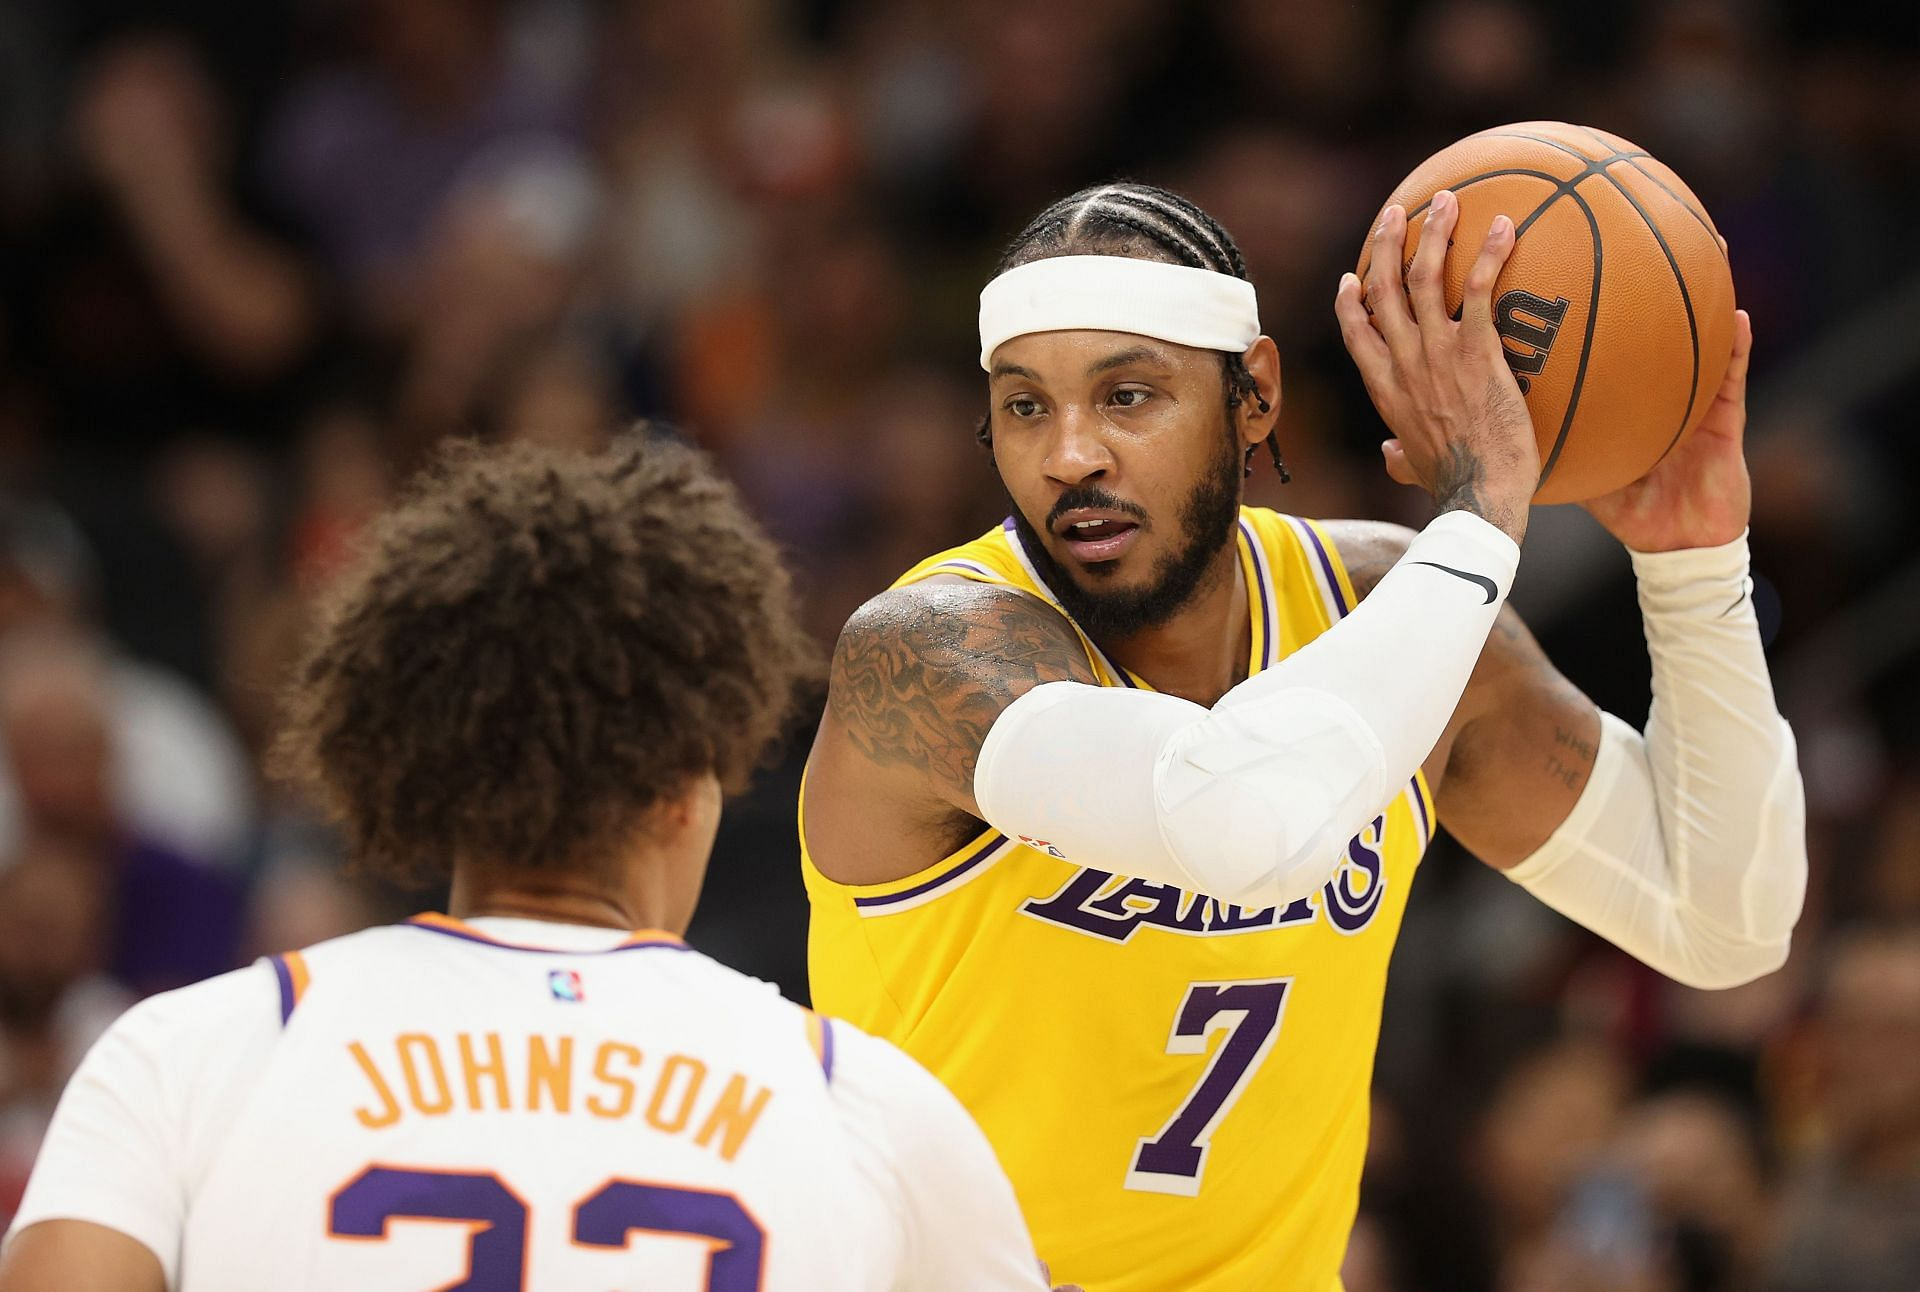 Carmelo Anthony in action during the LA Lakers vs Phoenix Suns game